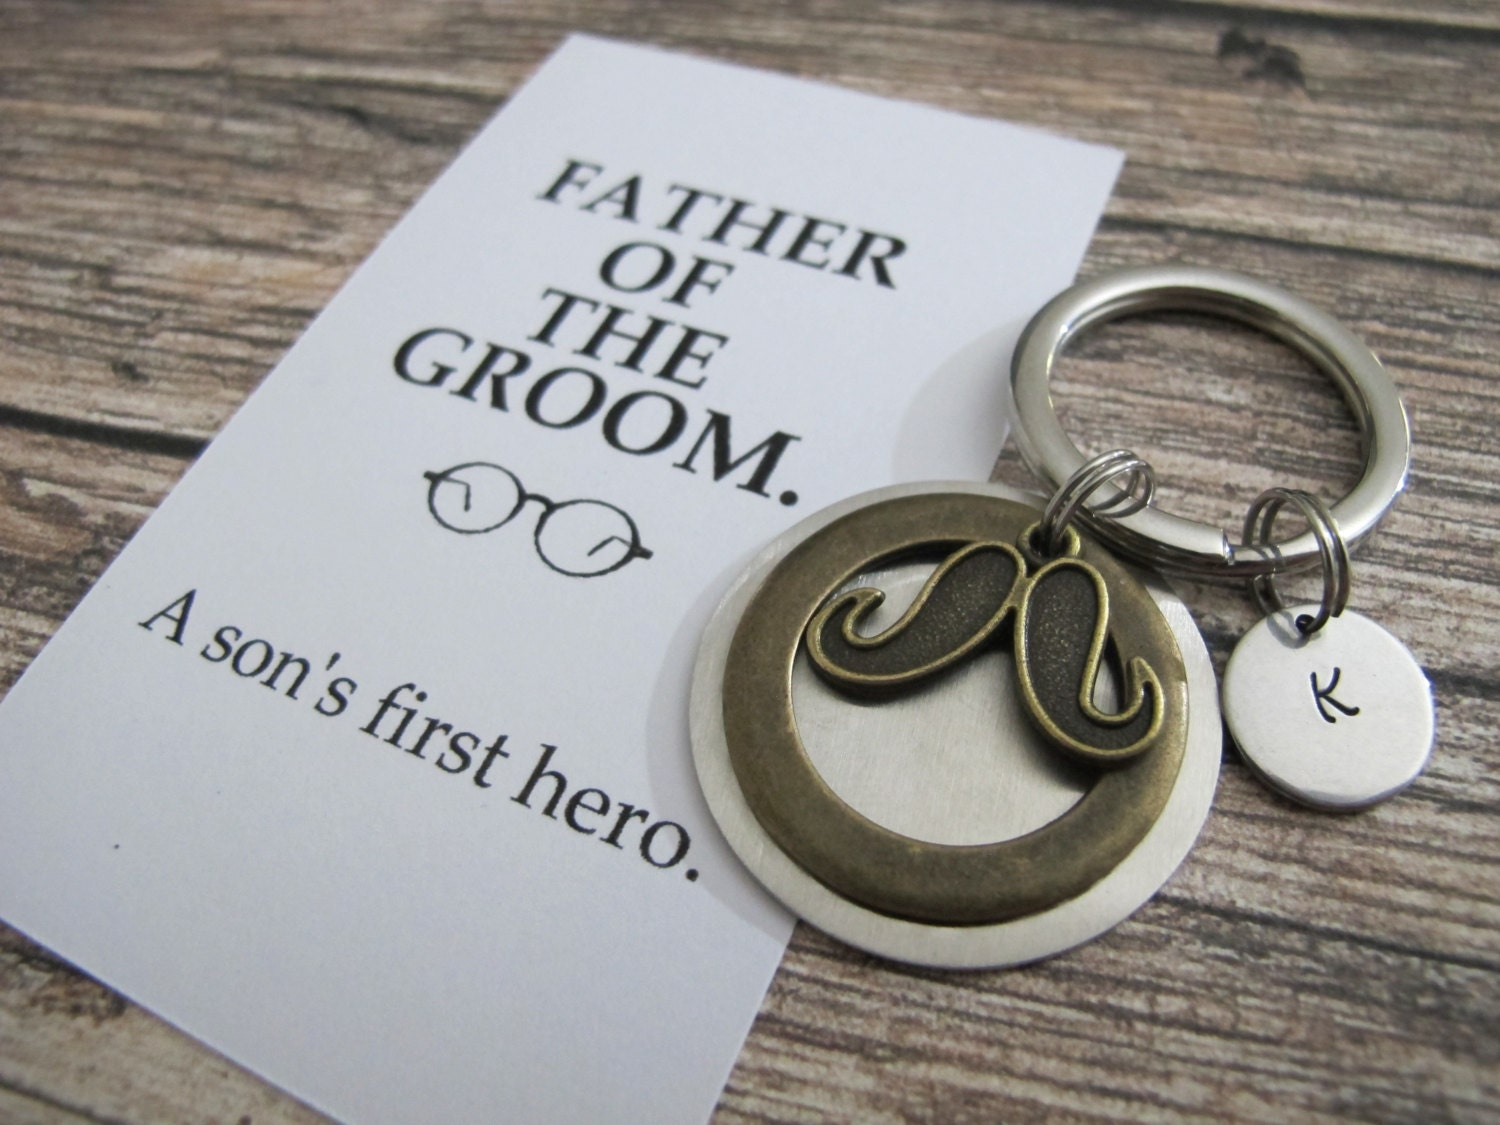 Presents For Groom From Bride: FATHER Of The GROOM Gift PERSONALIZED Keychain A Son's